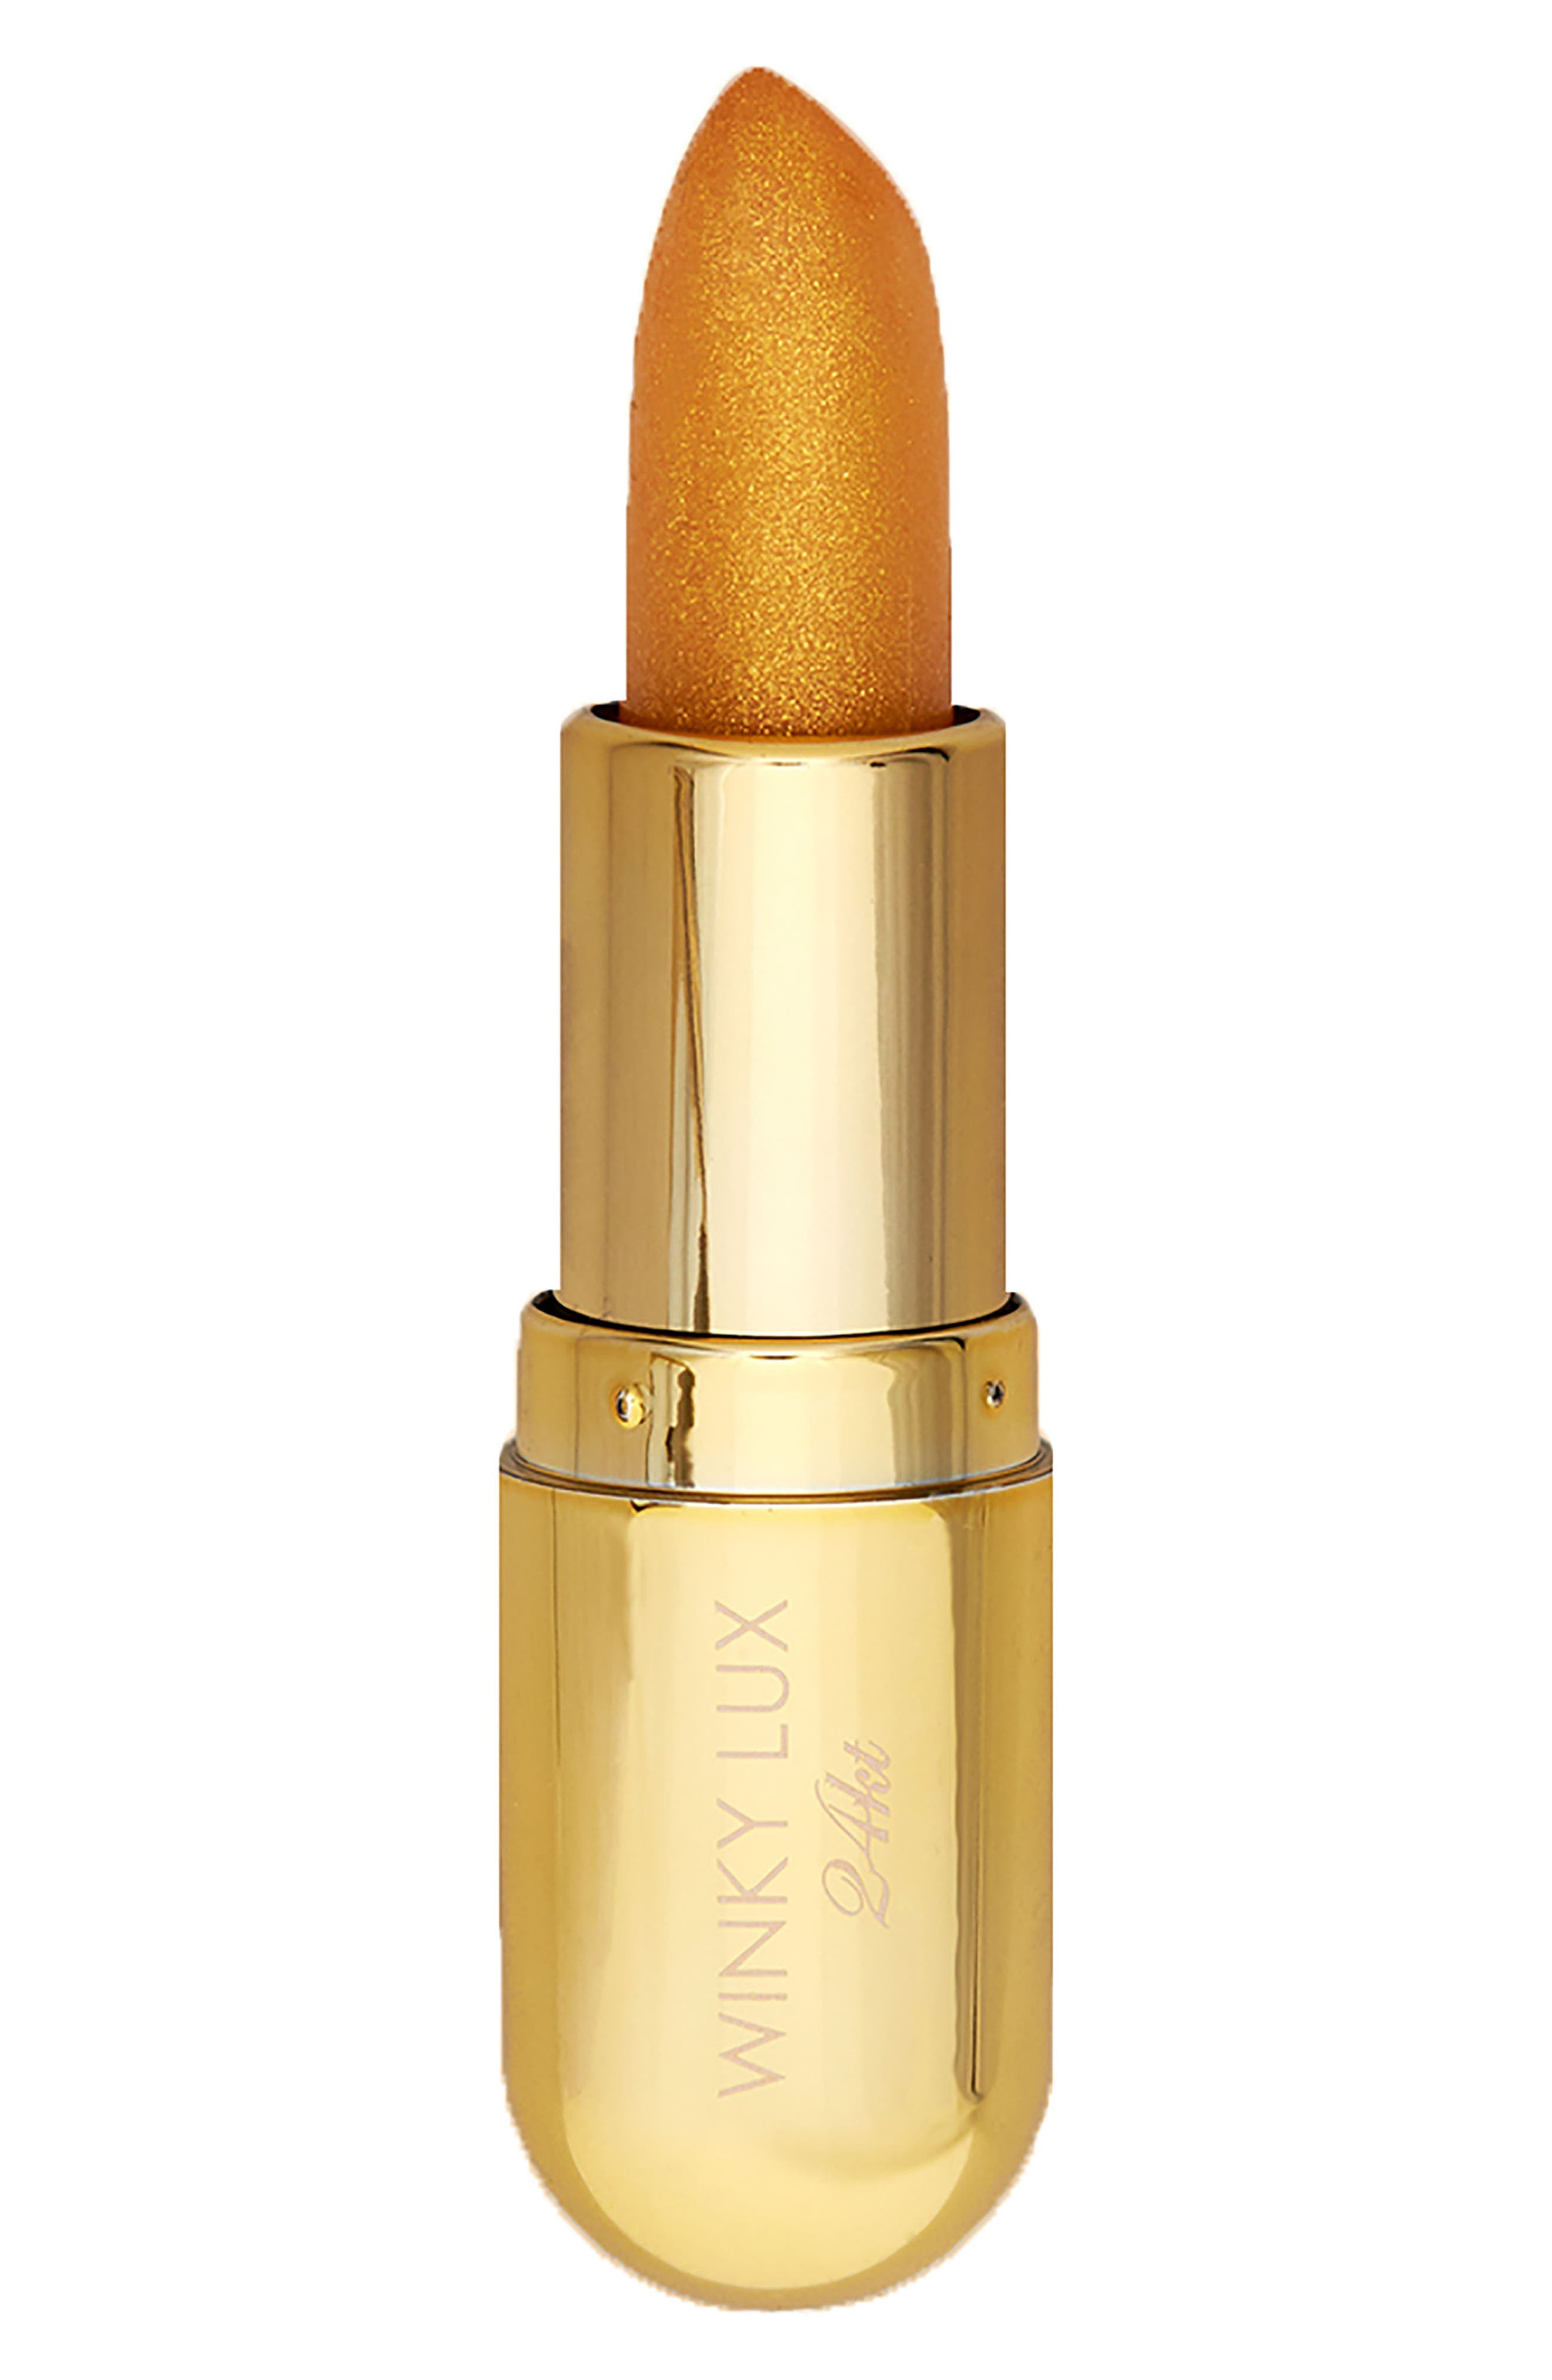 Main Image - Winky Lux Glimmer Balm